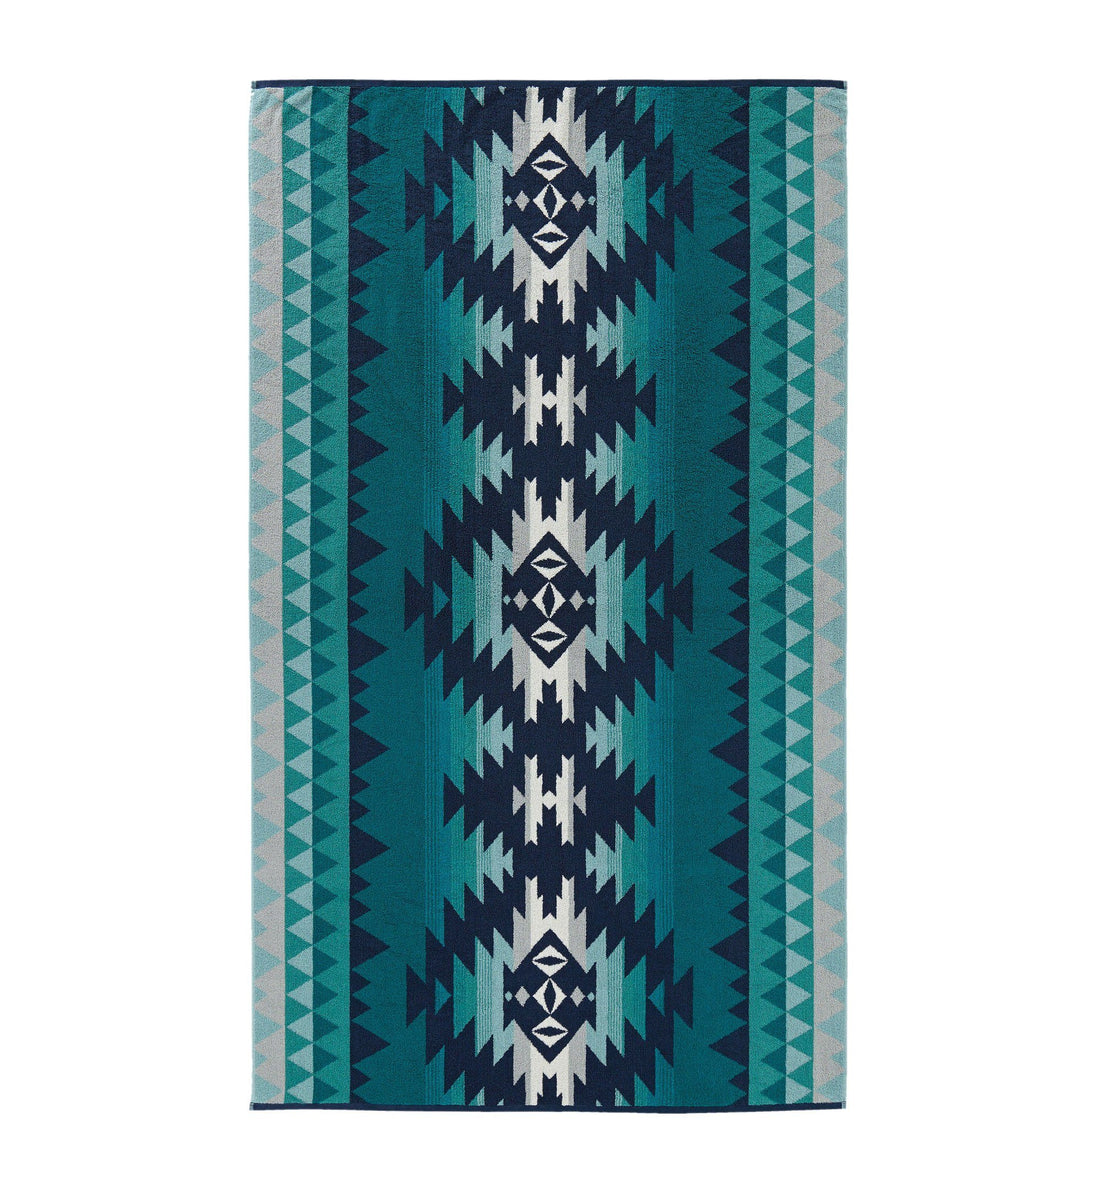 Pendleton Woolen Mills Oversized Jacquard Towel - Papago Park Turquoise - Outdoor Living/Travel - Iron and Resin